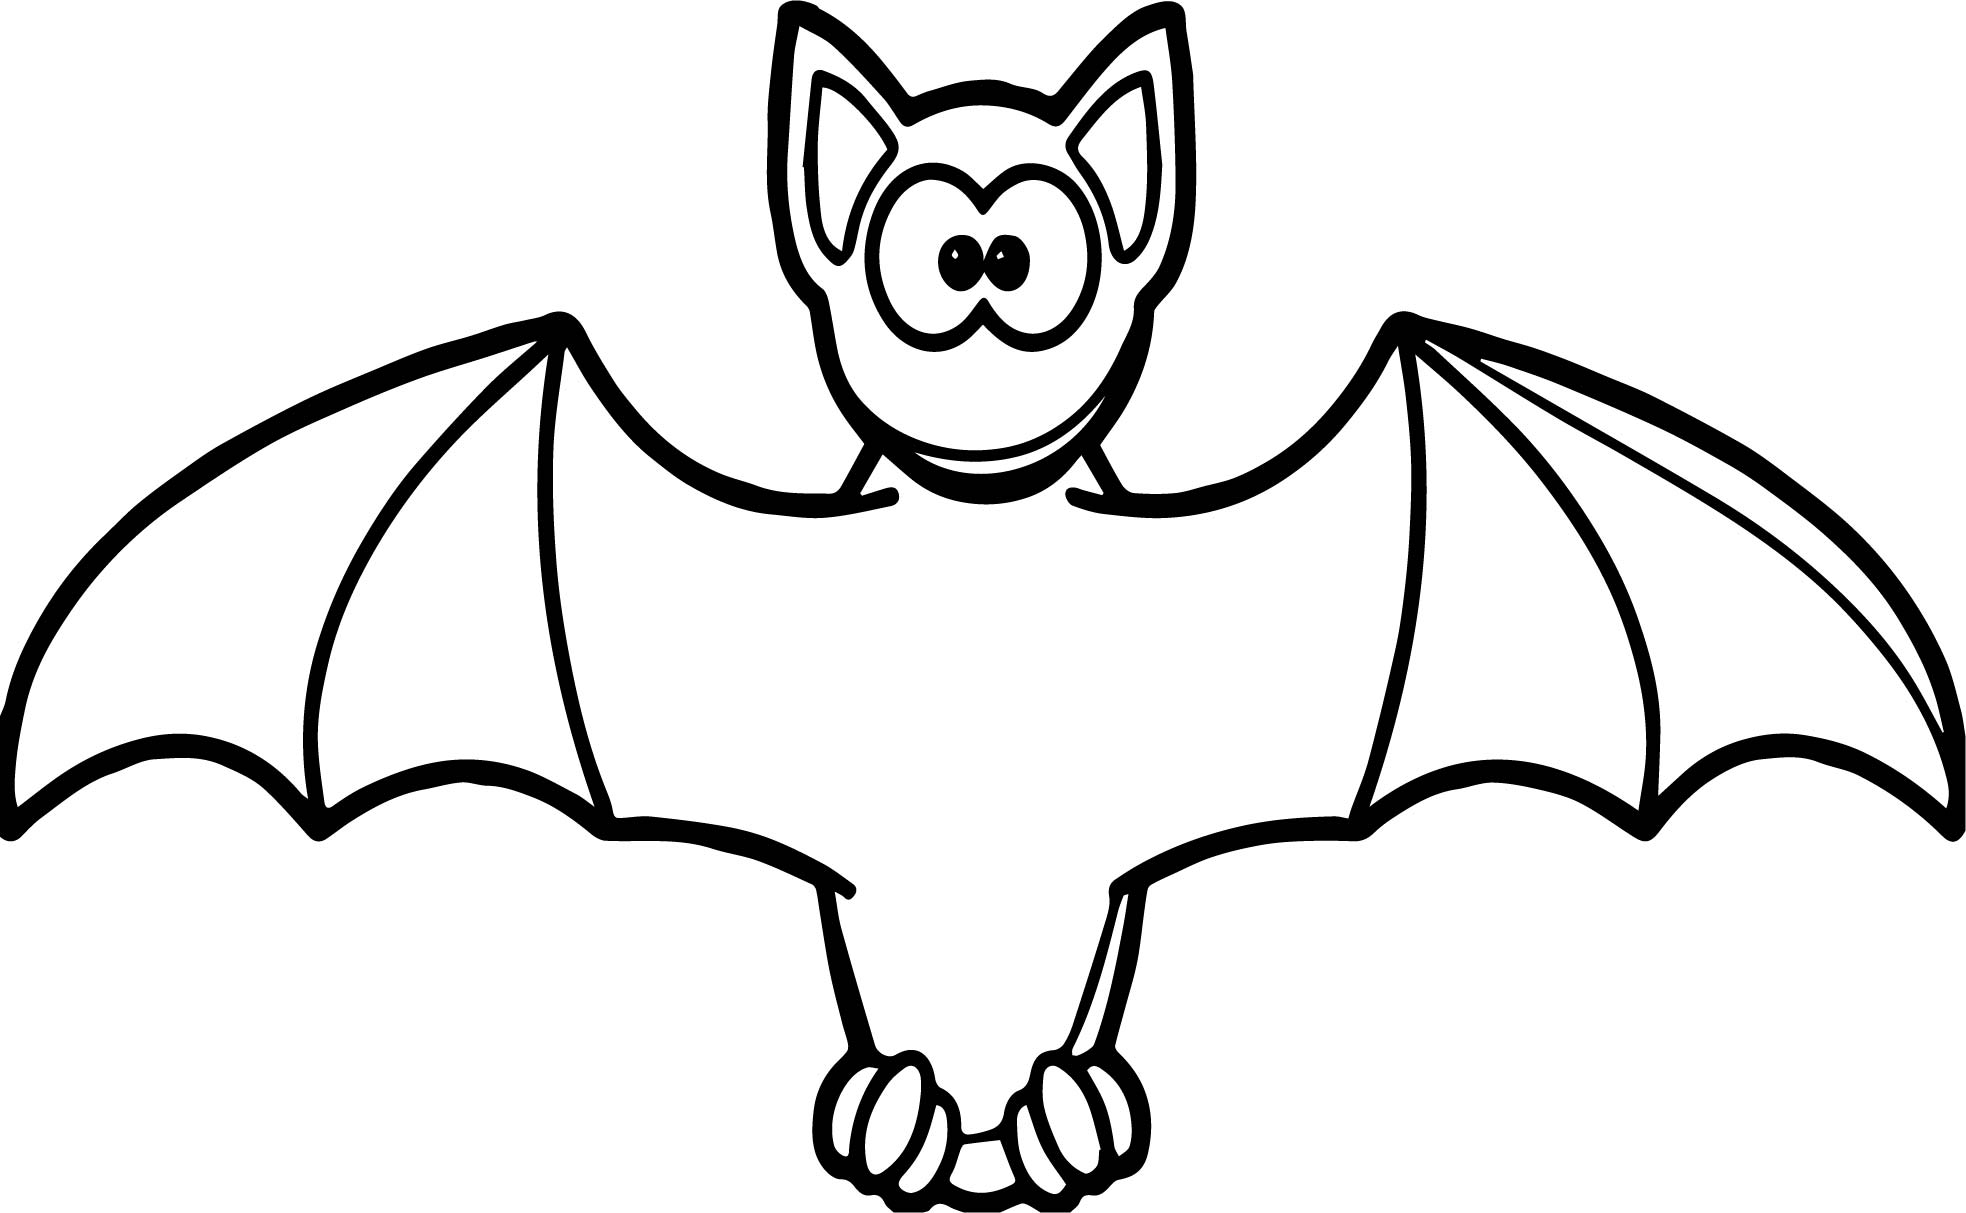 Cartooon vampire bat coloring page for Bats coloring pages